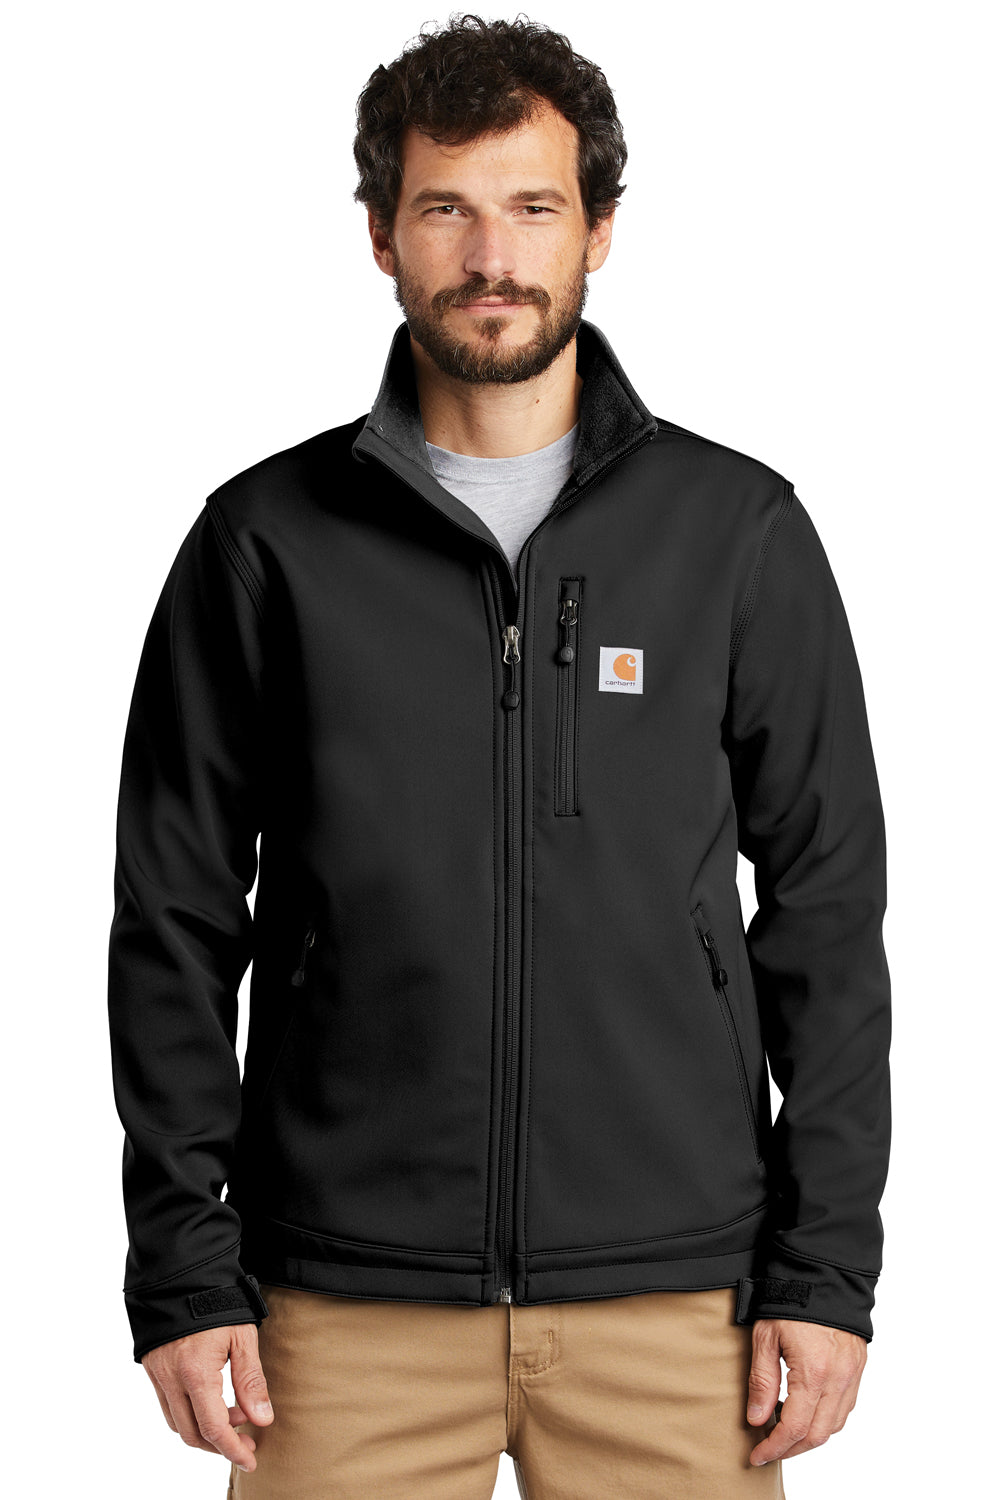 Carhartt CT102199 Mens Crowley Wind & Water Resistant Full Zip Jacket Black Front